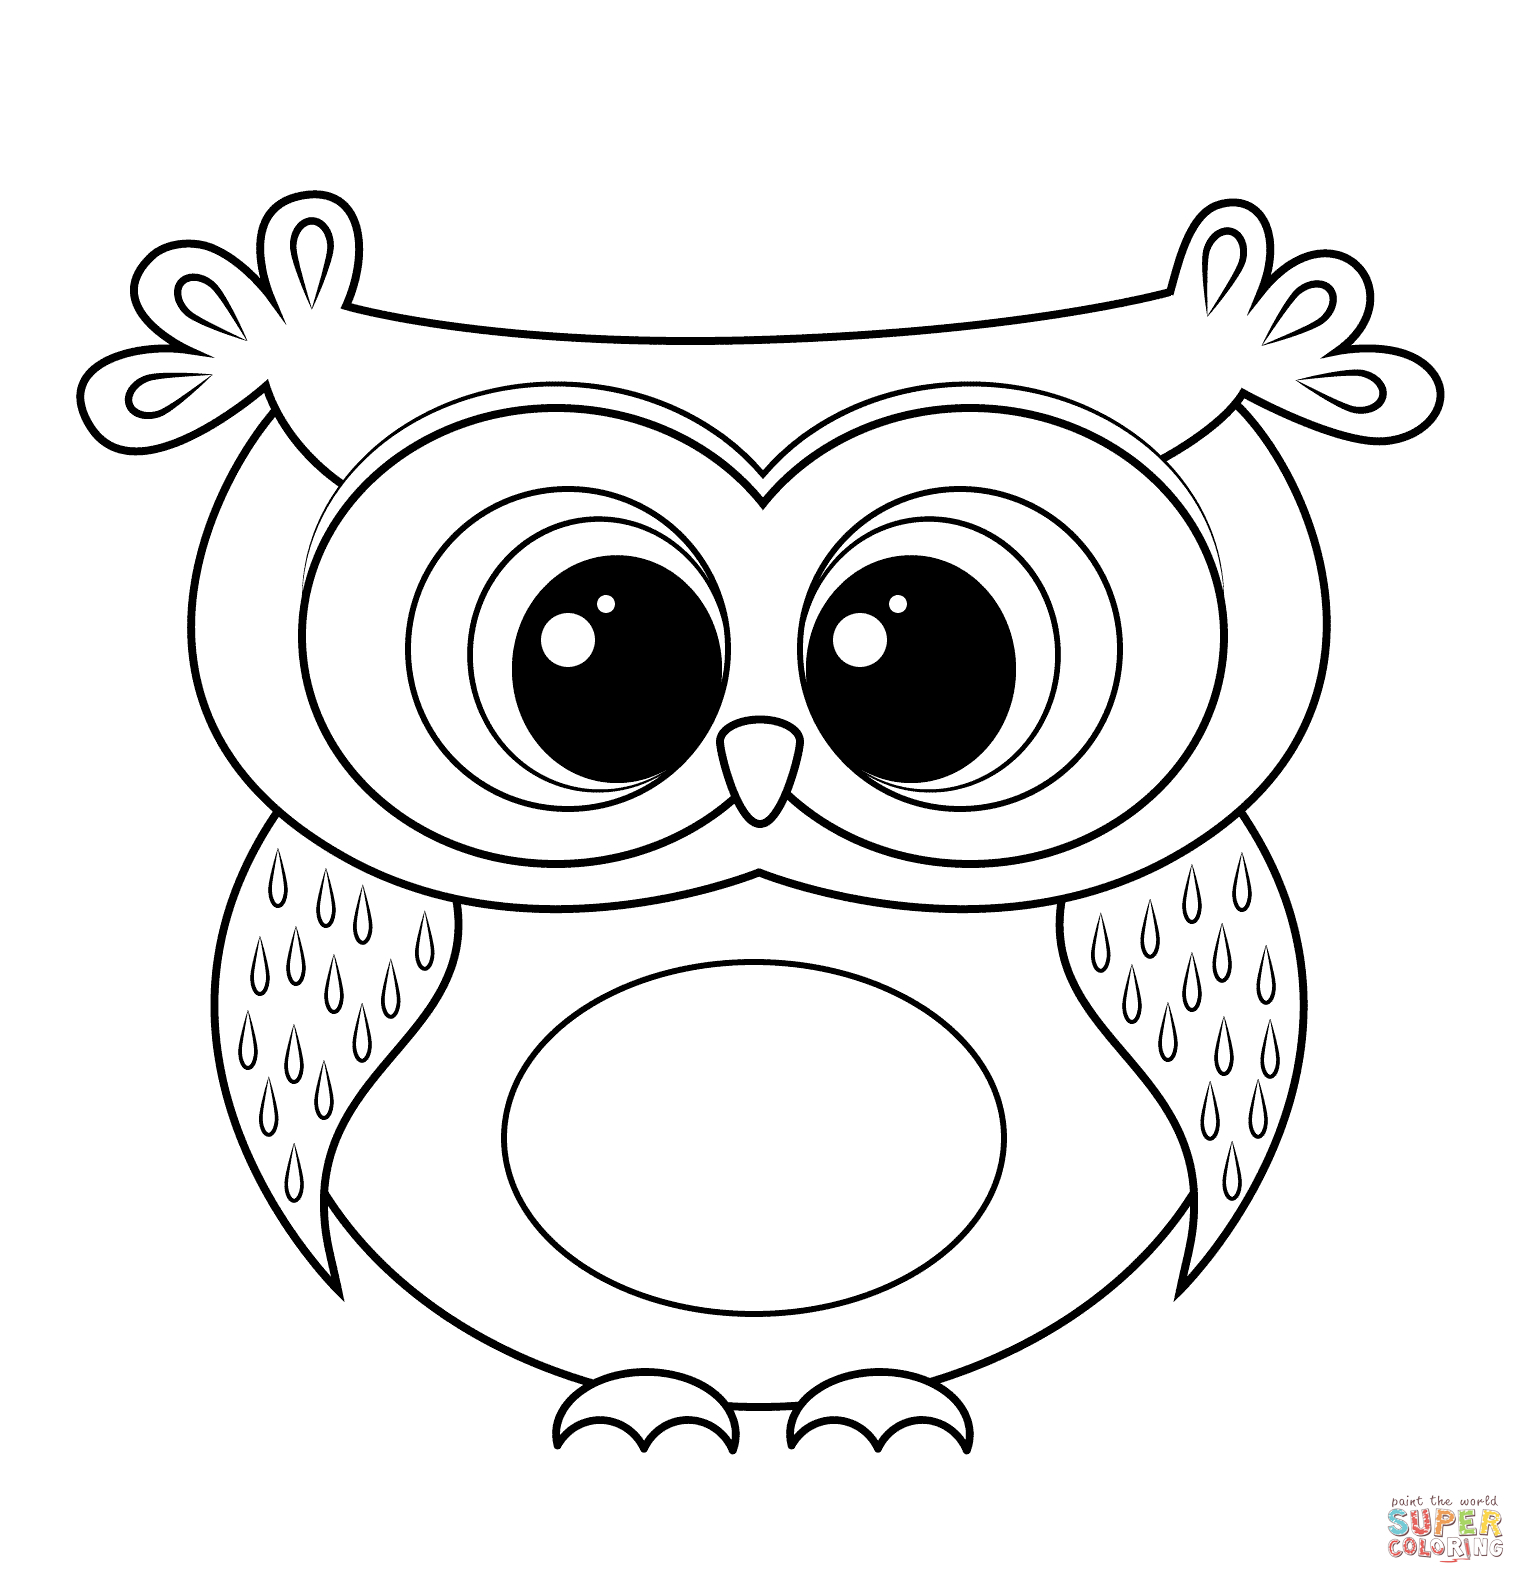 Cartoon Owl Coloring Page | Free Printable Coloring Pages - Free Printable Owl Coloring Sheets